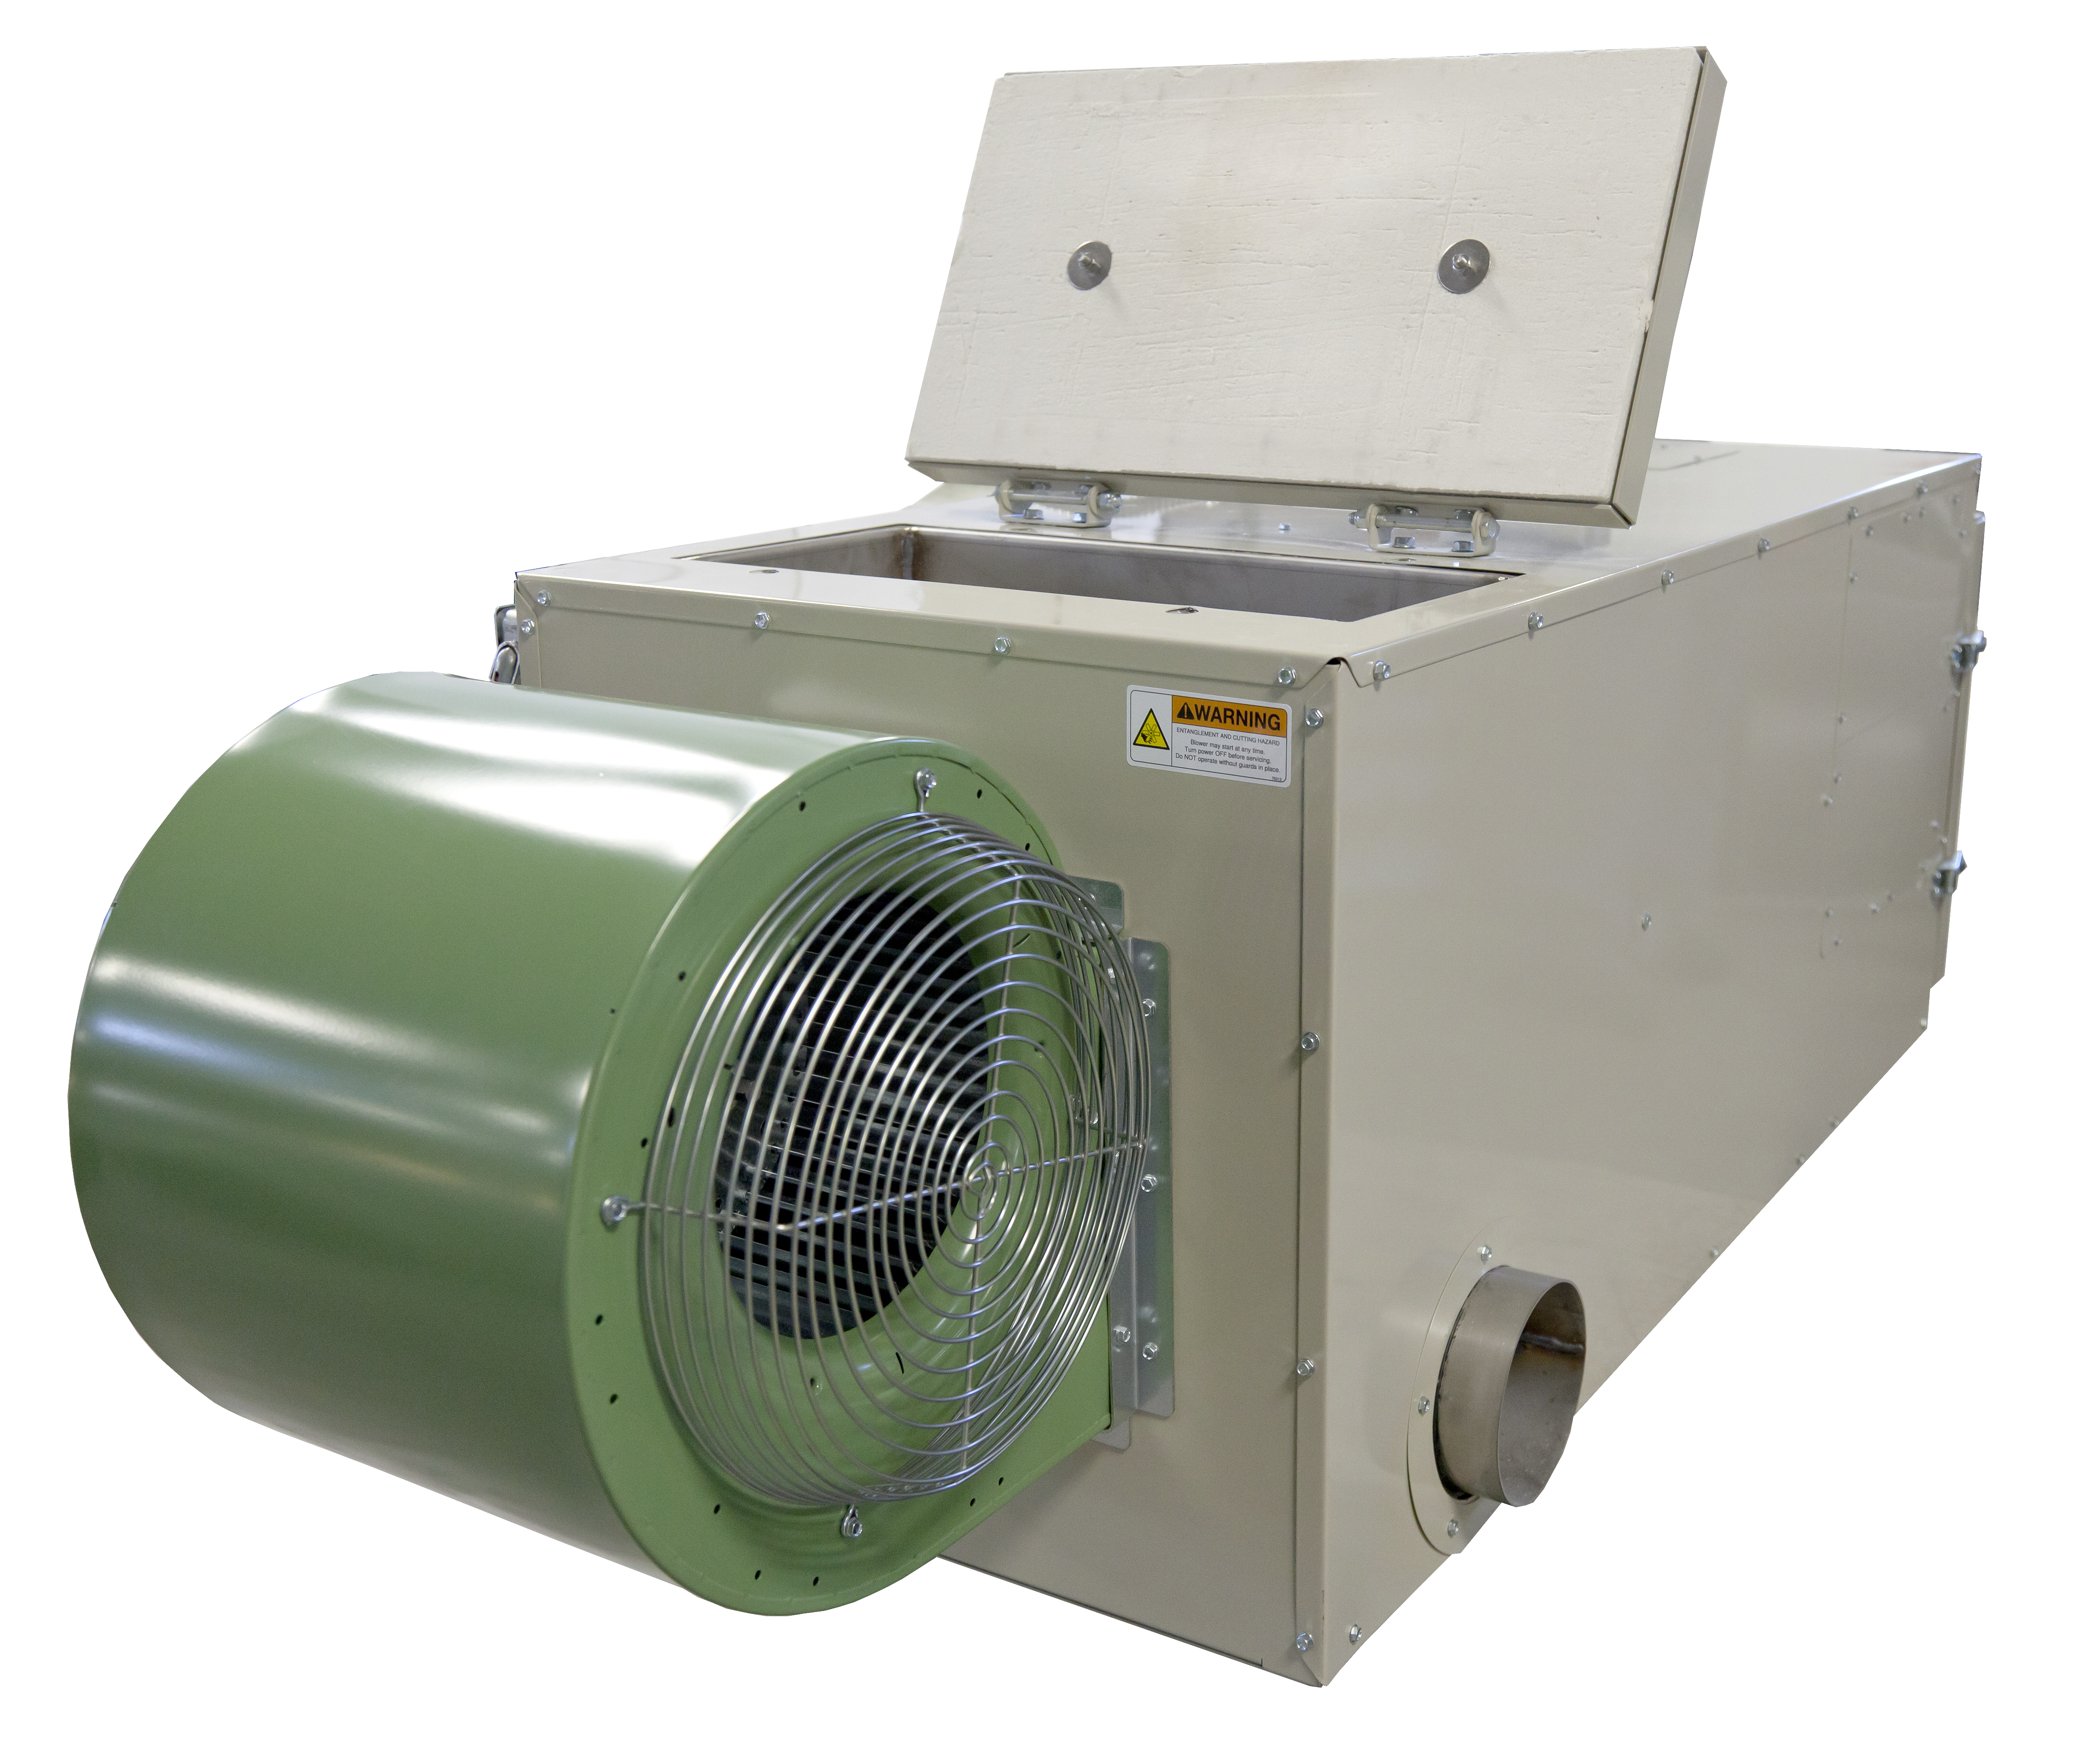 Clean Energy CE-180 Waste Oil Furnace